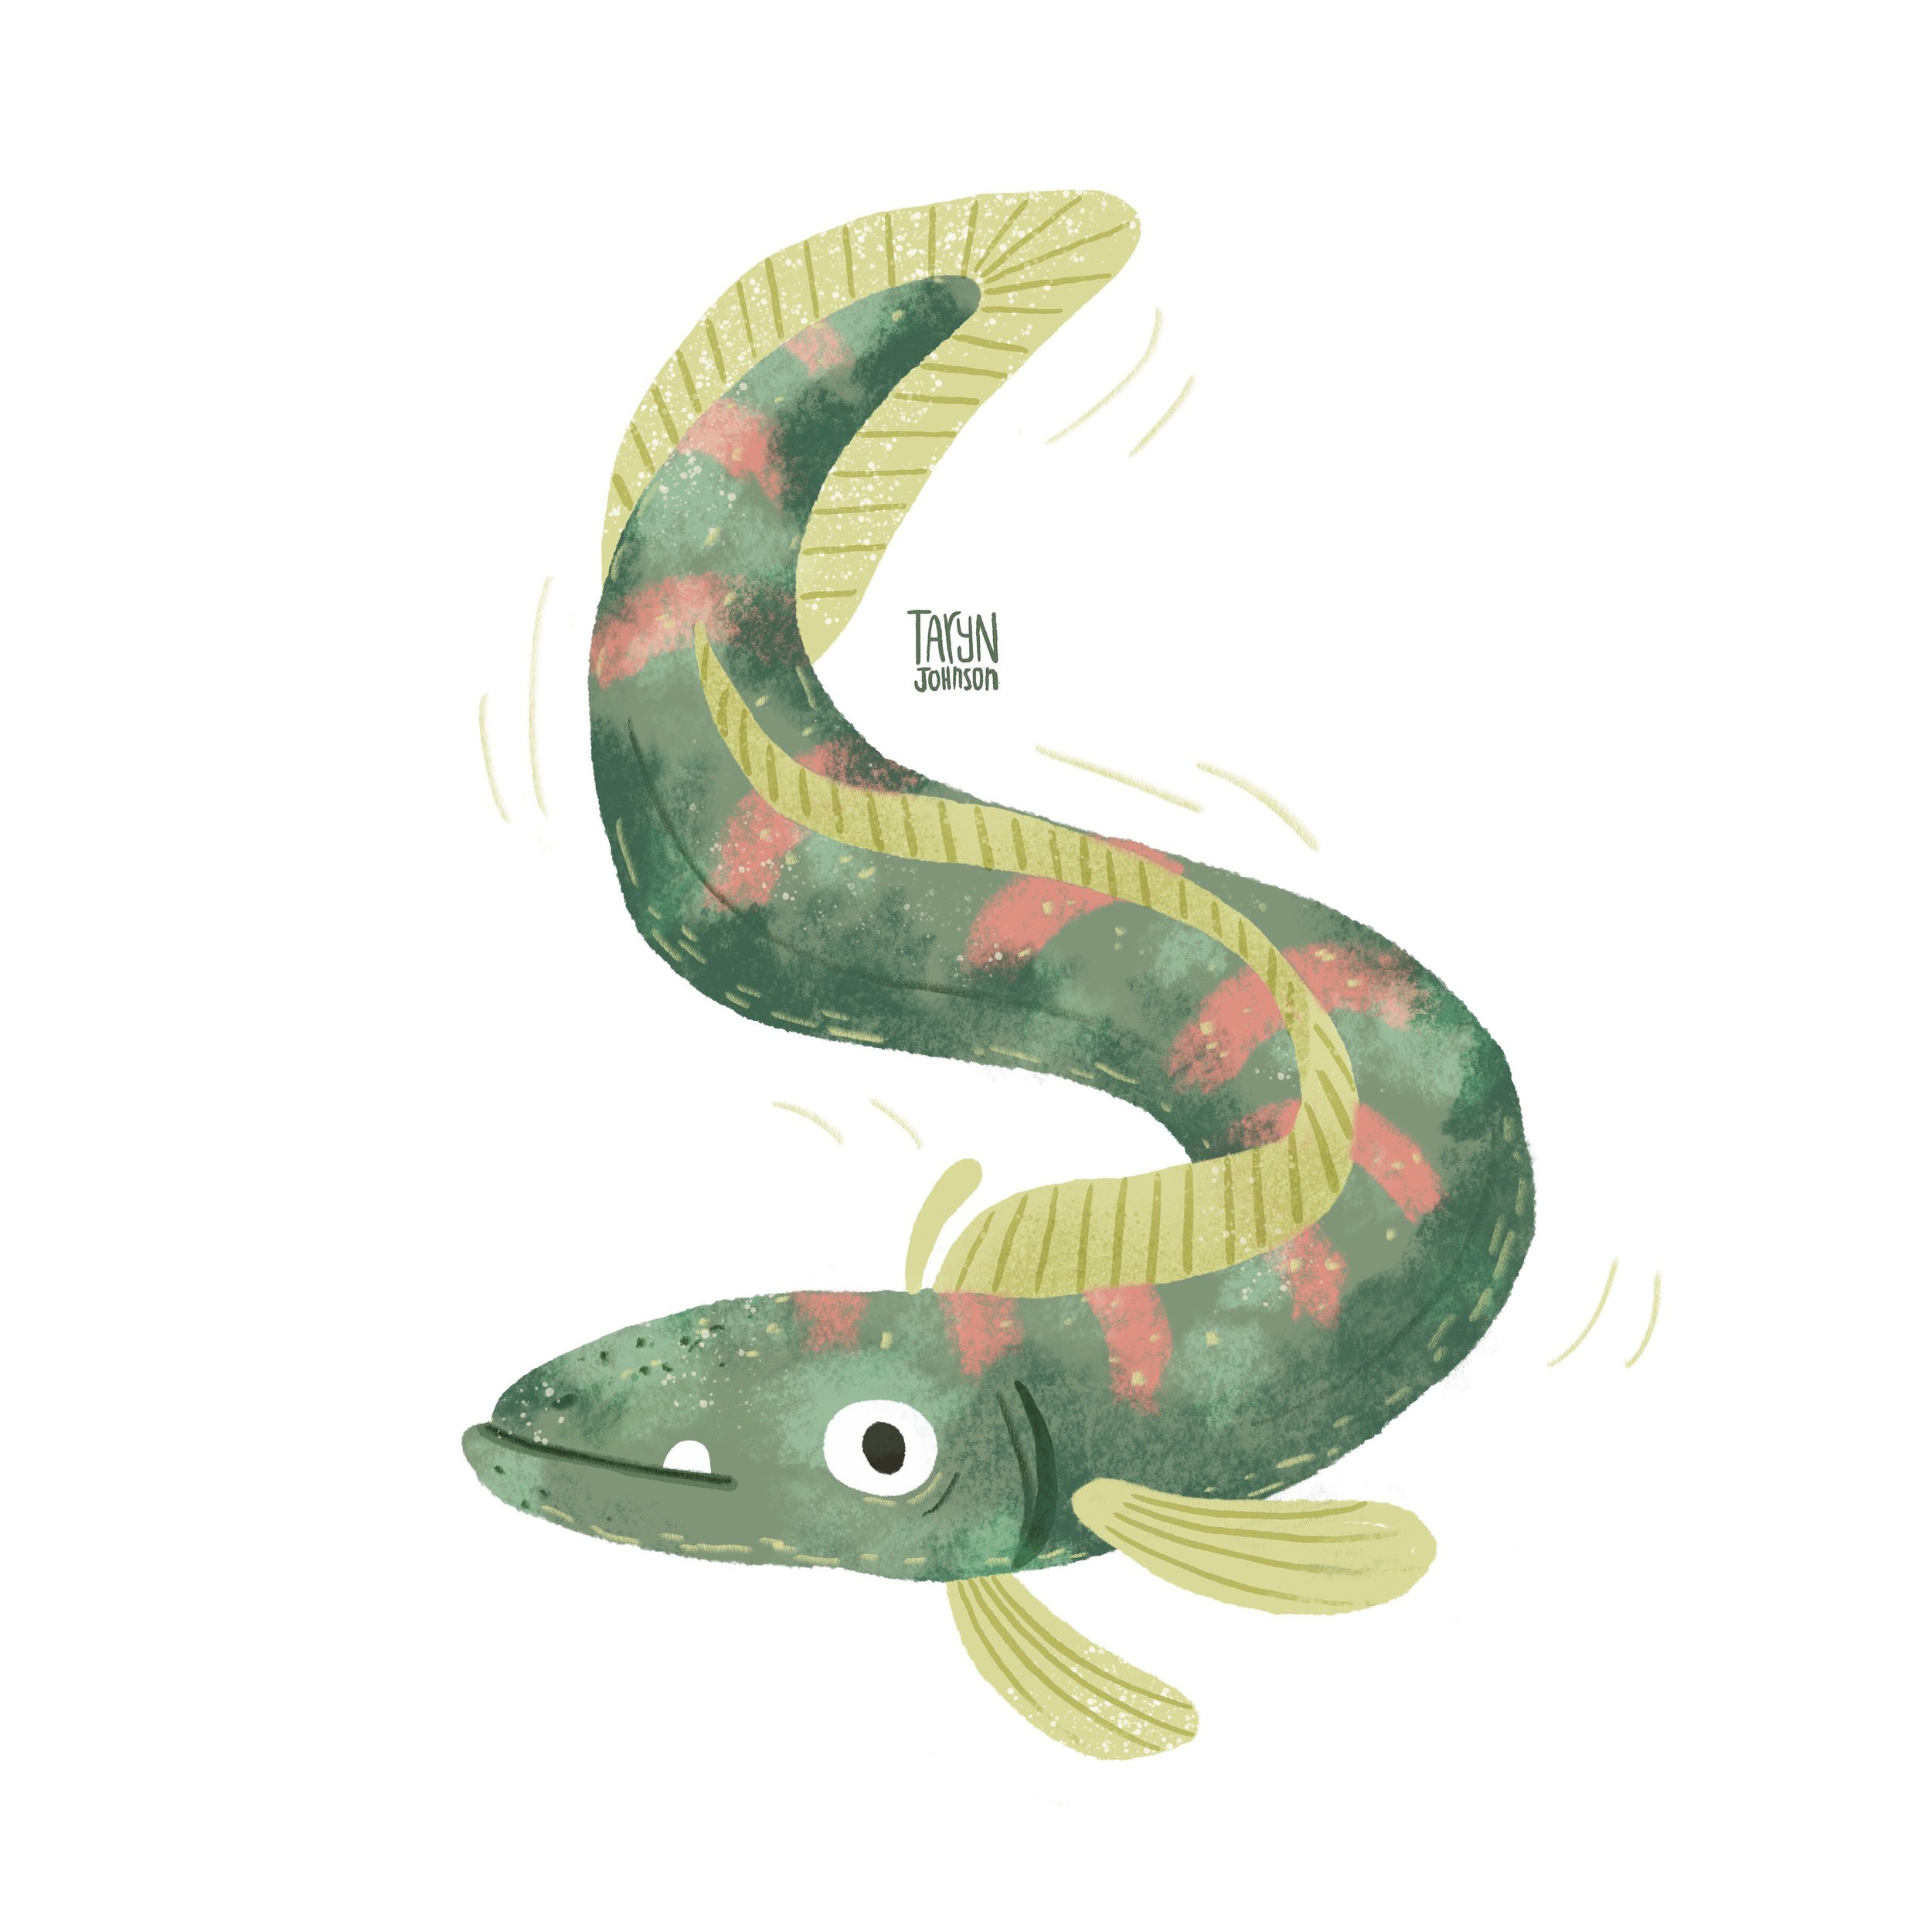 13/100 a wiggly fish